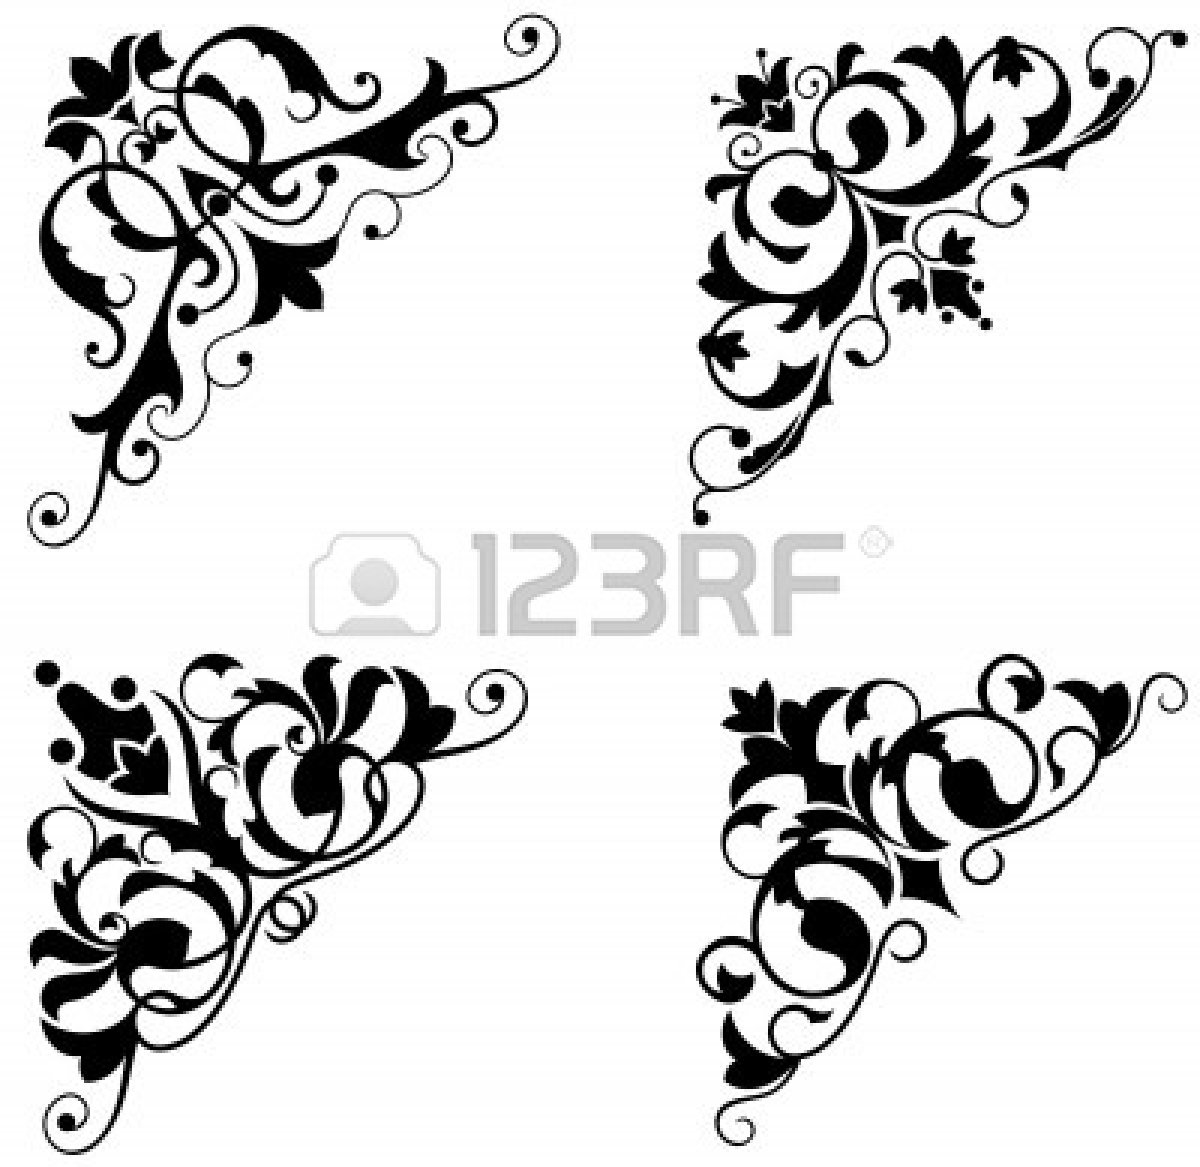 Victorian Design victorian scroll design | clipart panda - free clipart images